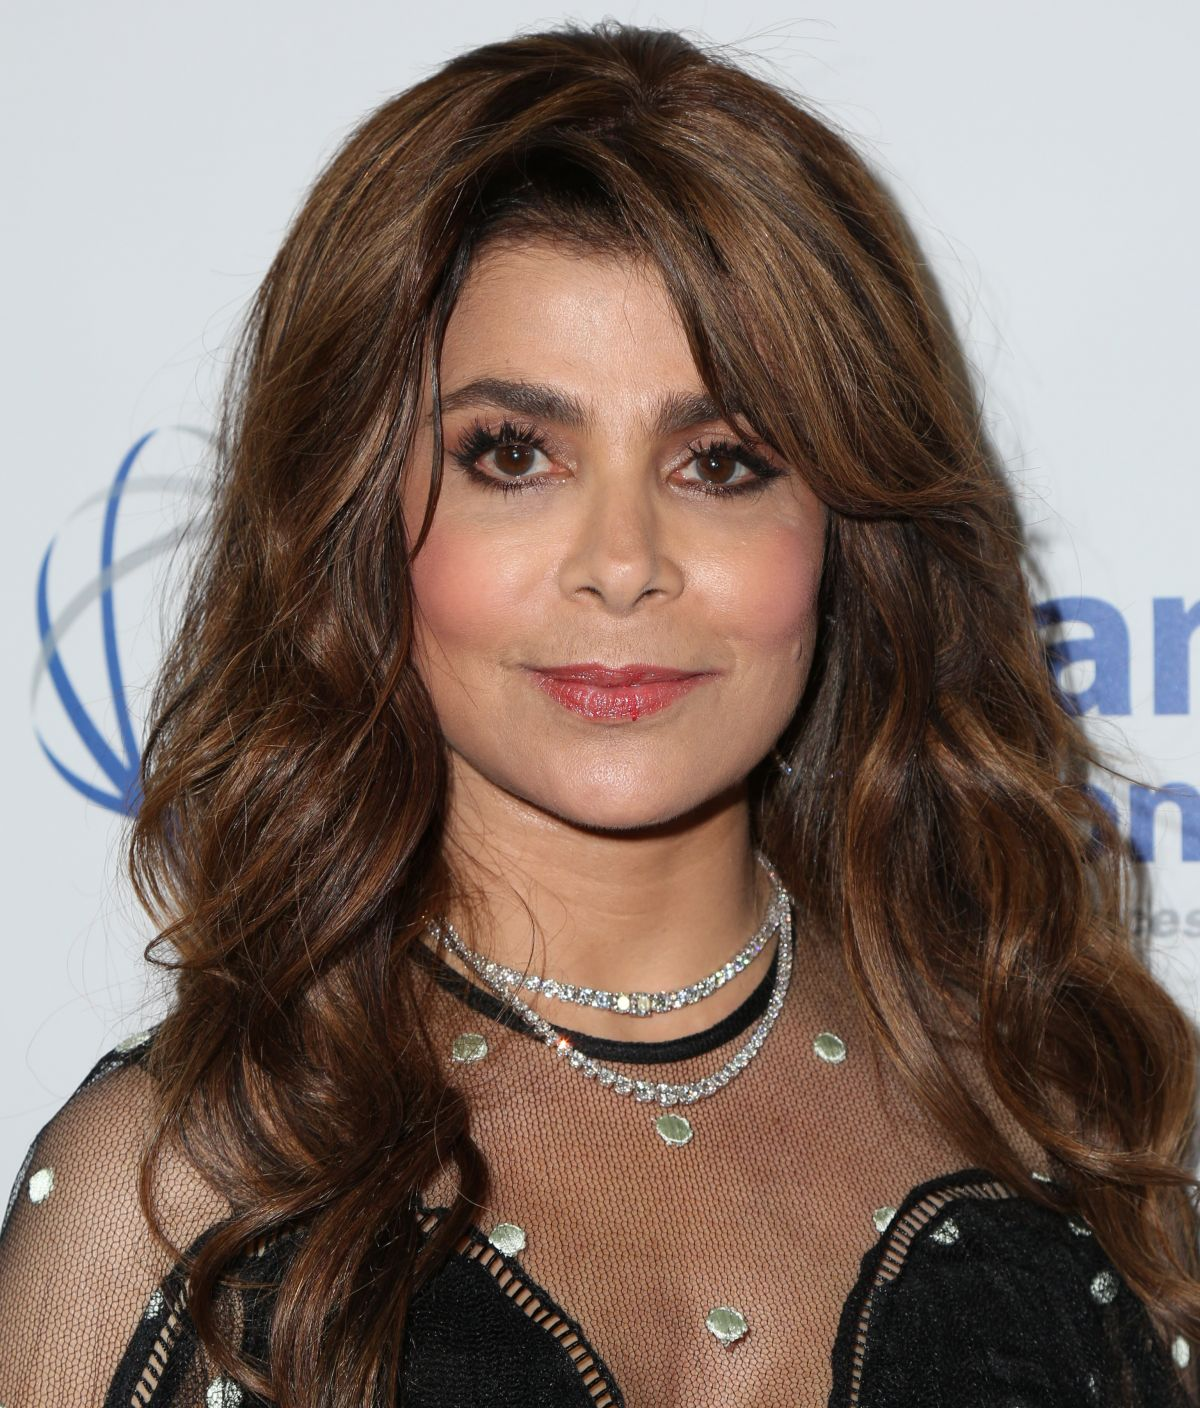 PAULA ABDUL at 4th Annual unite4:humanity Gala in Beverly Hills 04/07/2017